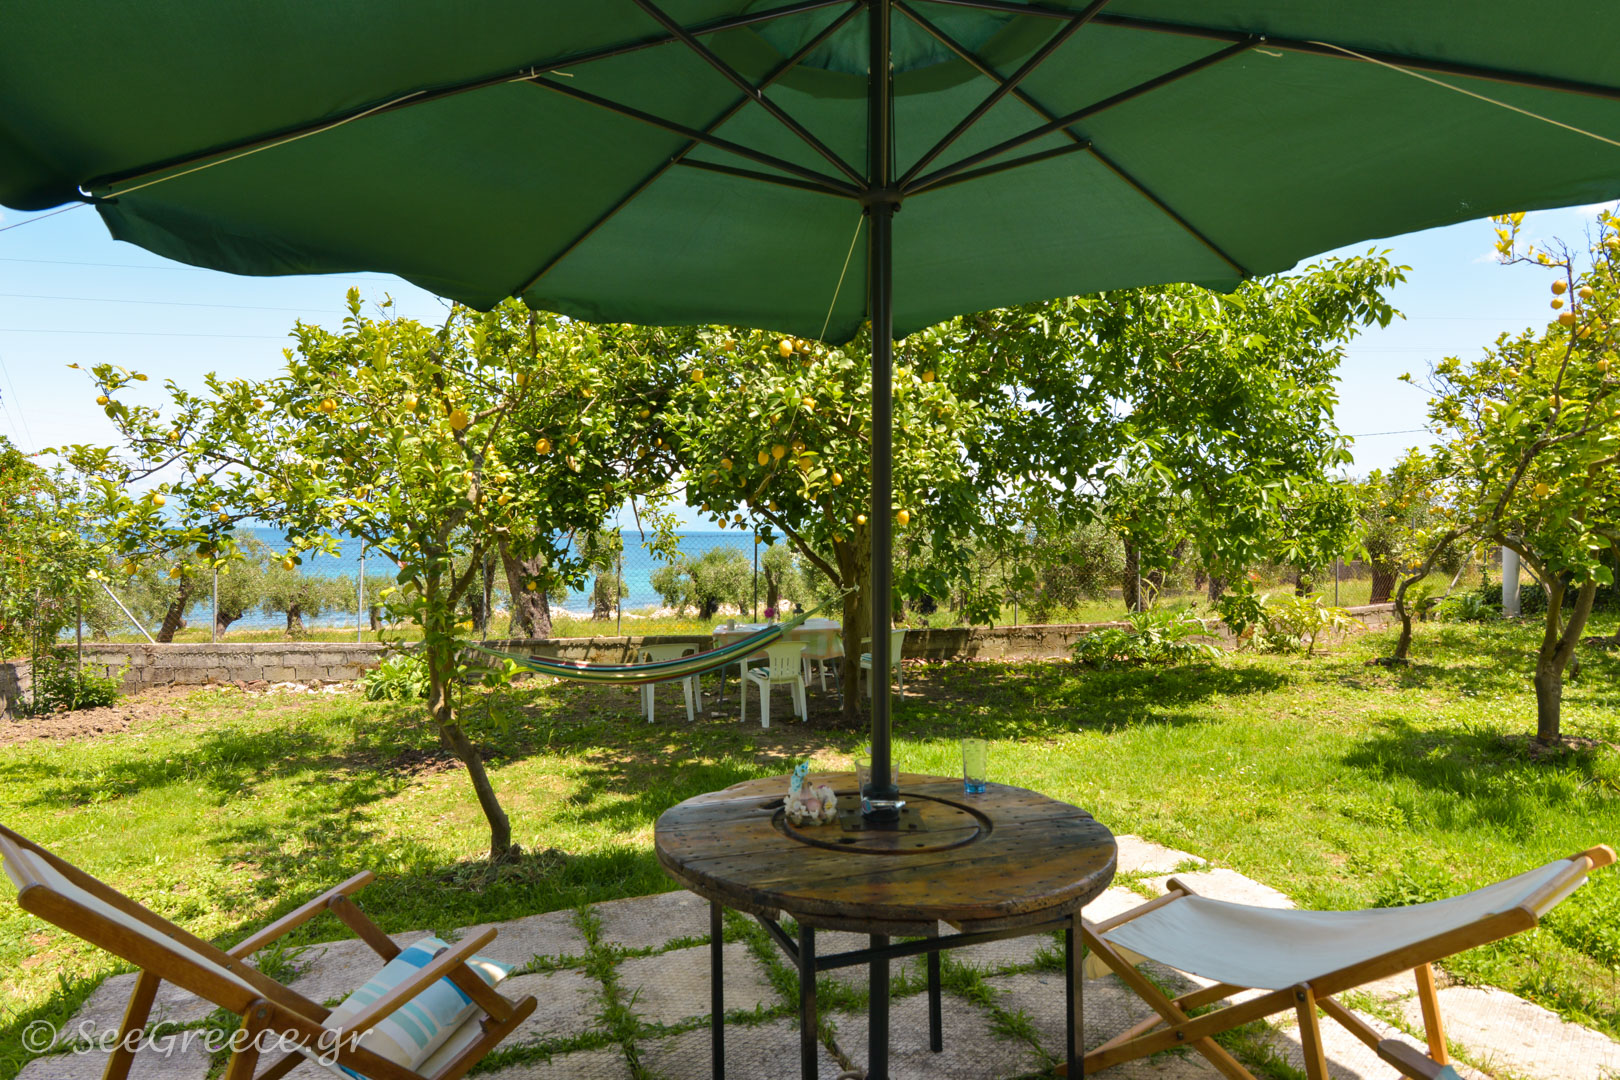 Family And Pet Friendly, Economic Accommodation In Corfu